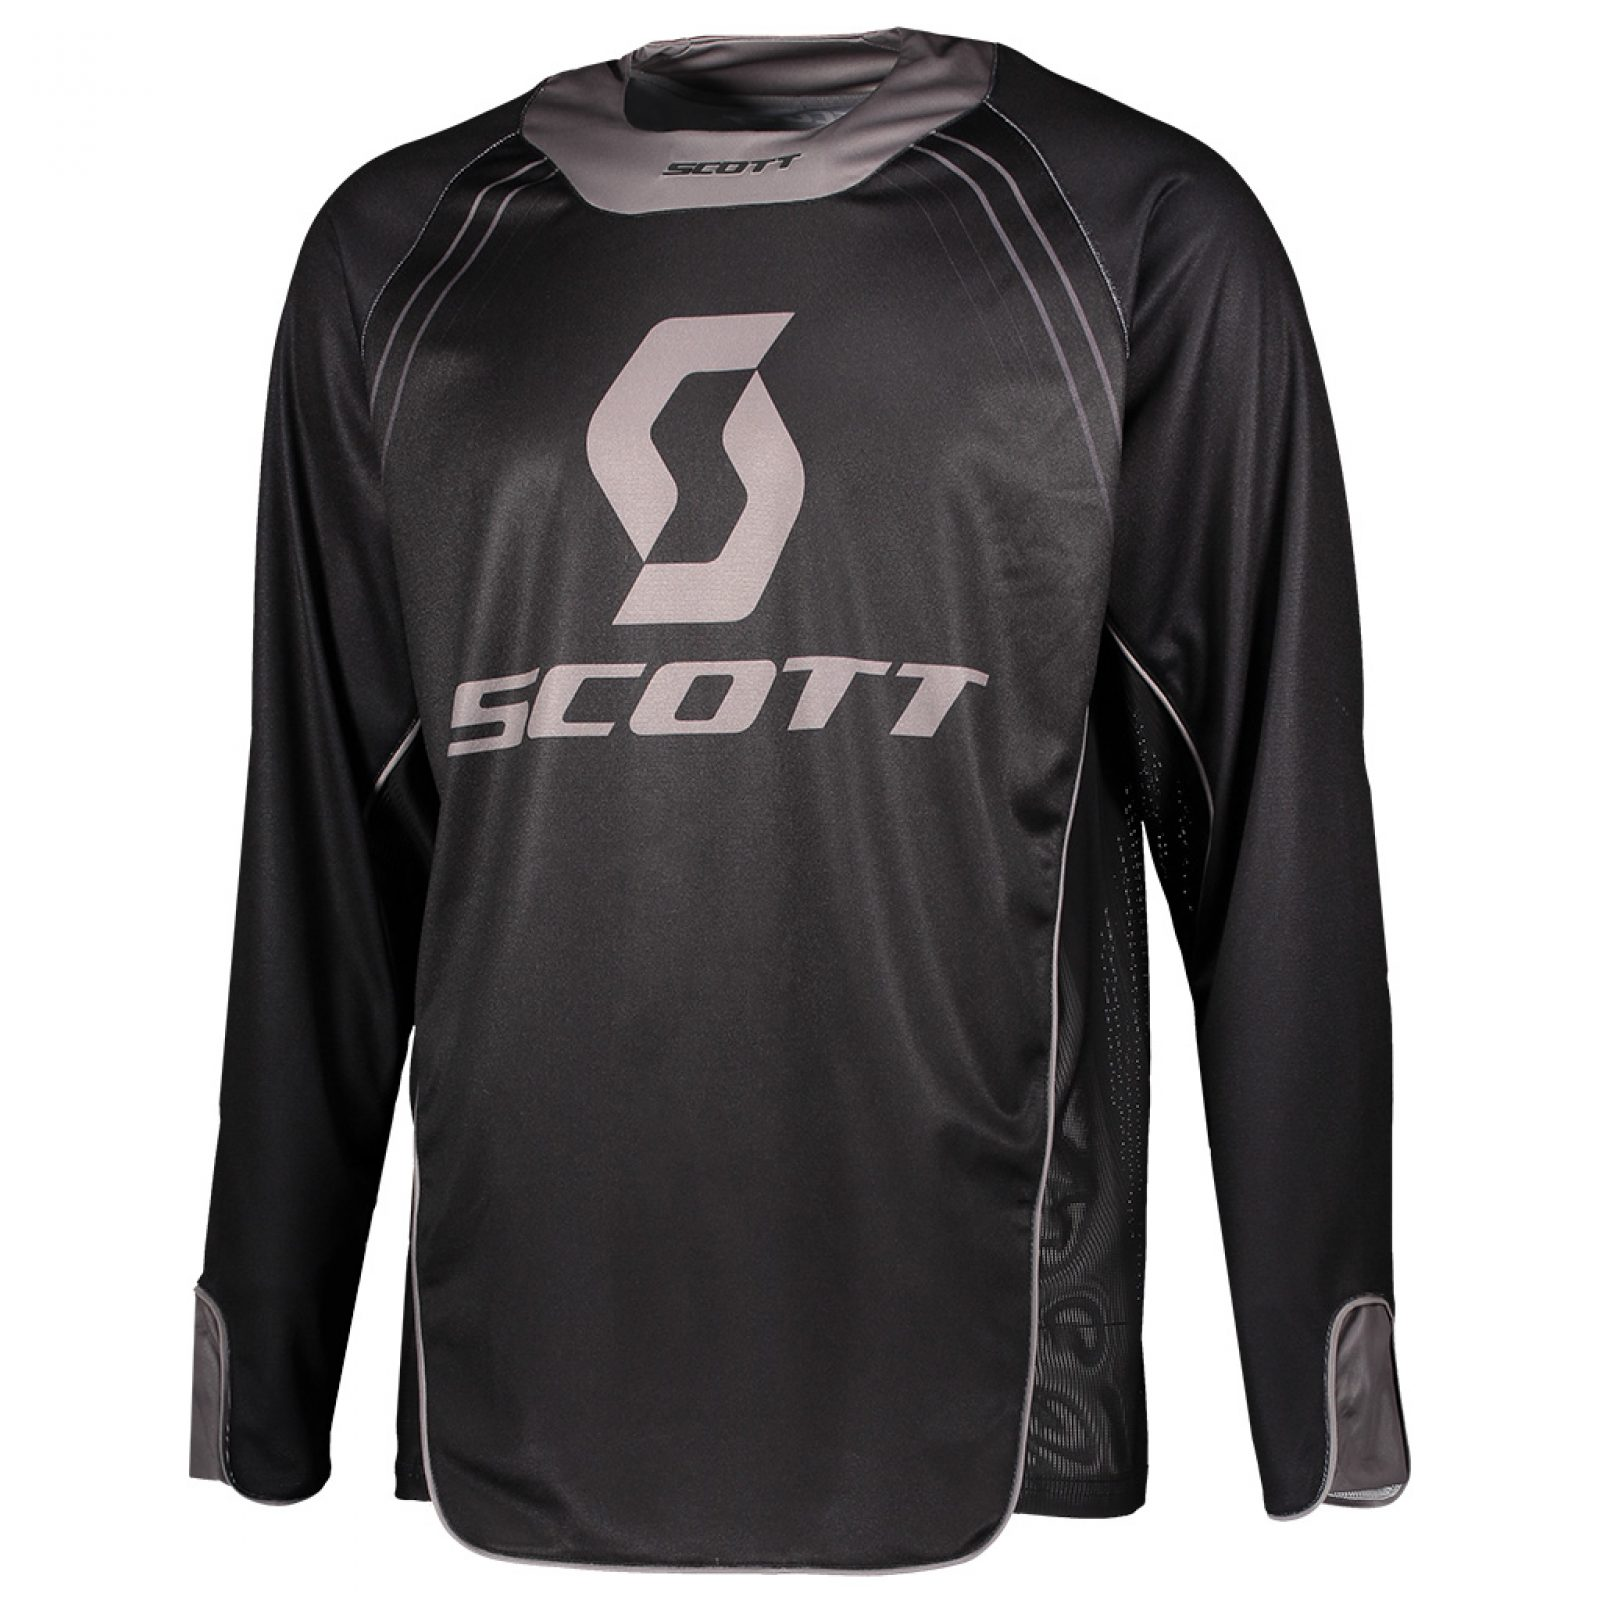 SCOTT_ENDURO_JERSEY_BLACK